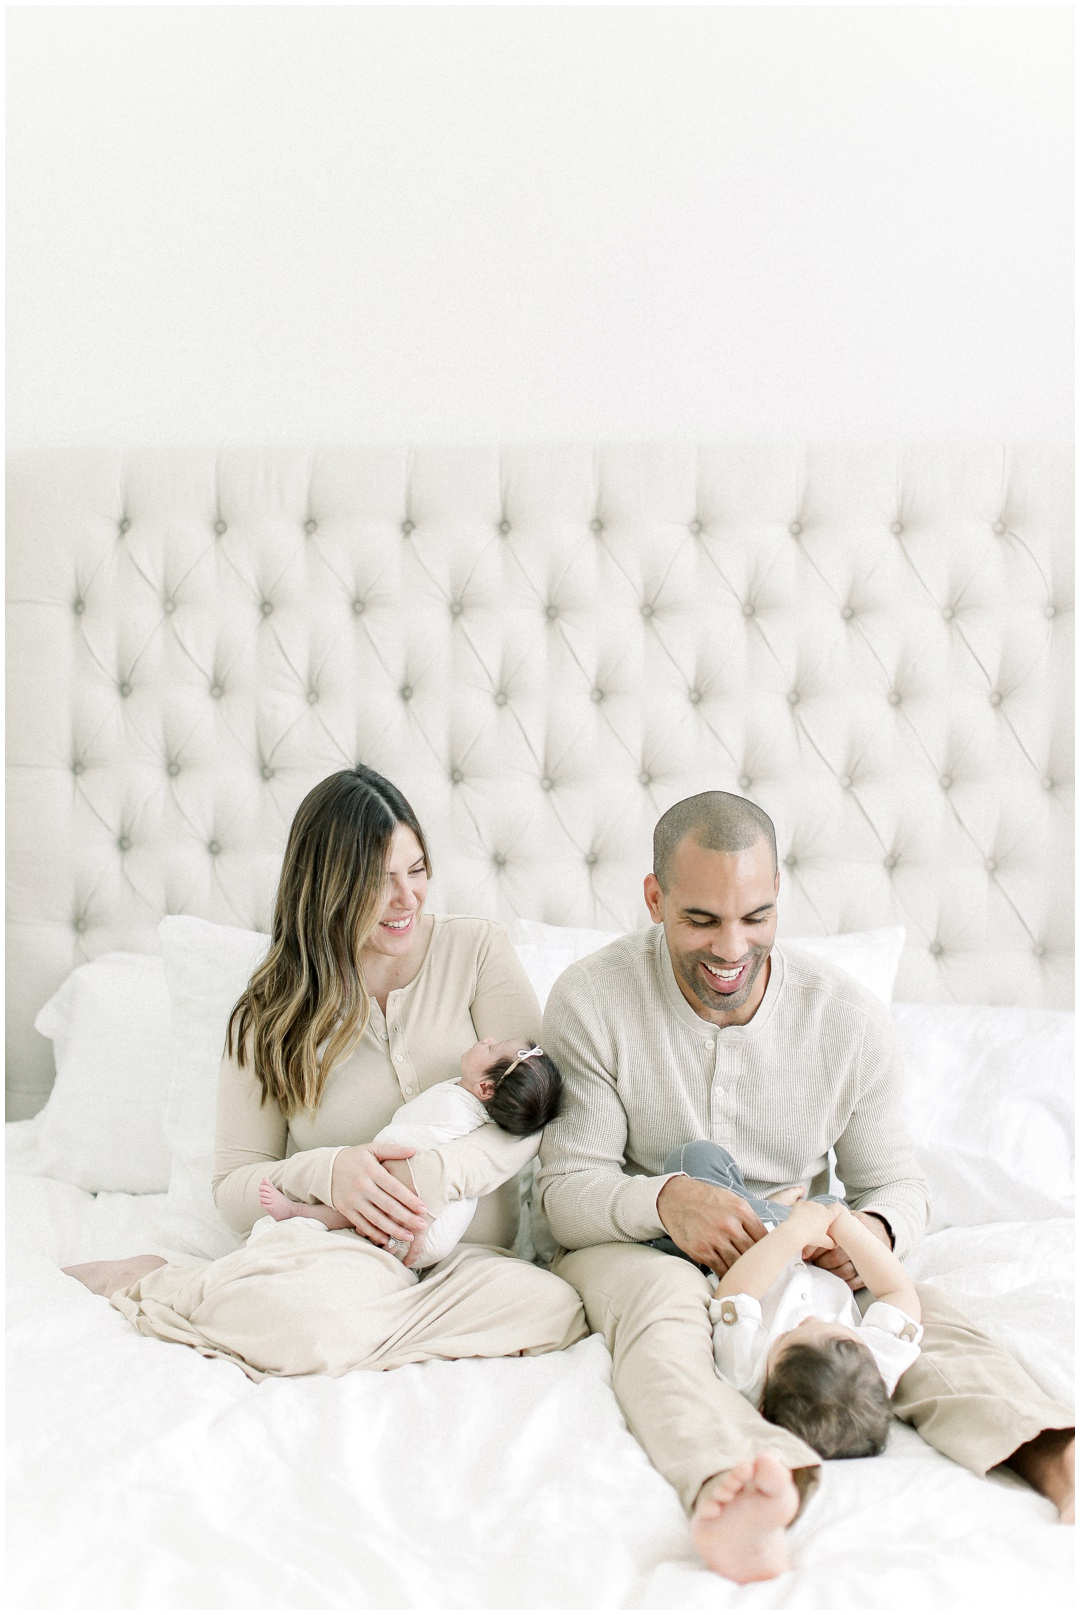 Newport_Beach_Newborn_Light_Airy_Natural_Photographer_Newport_Beach_In-Home_Photographer_Orange_County_Family_Photographer_Cori_Kleckner_Photography_Huntington_Beach_Photographer_Family_OC_Newborn_Blair_Sharpe_Ricky_Sharpe_Newborn_Family__3163.jpg